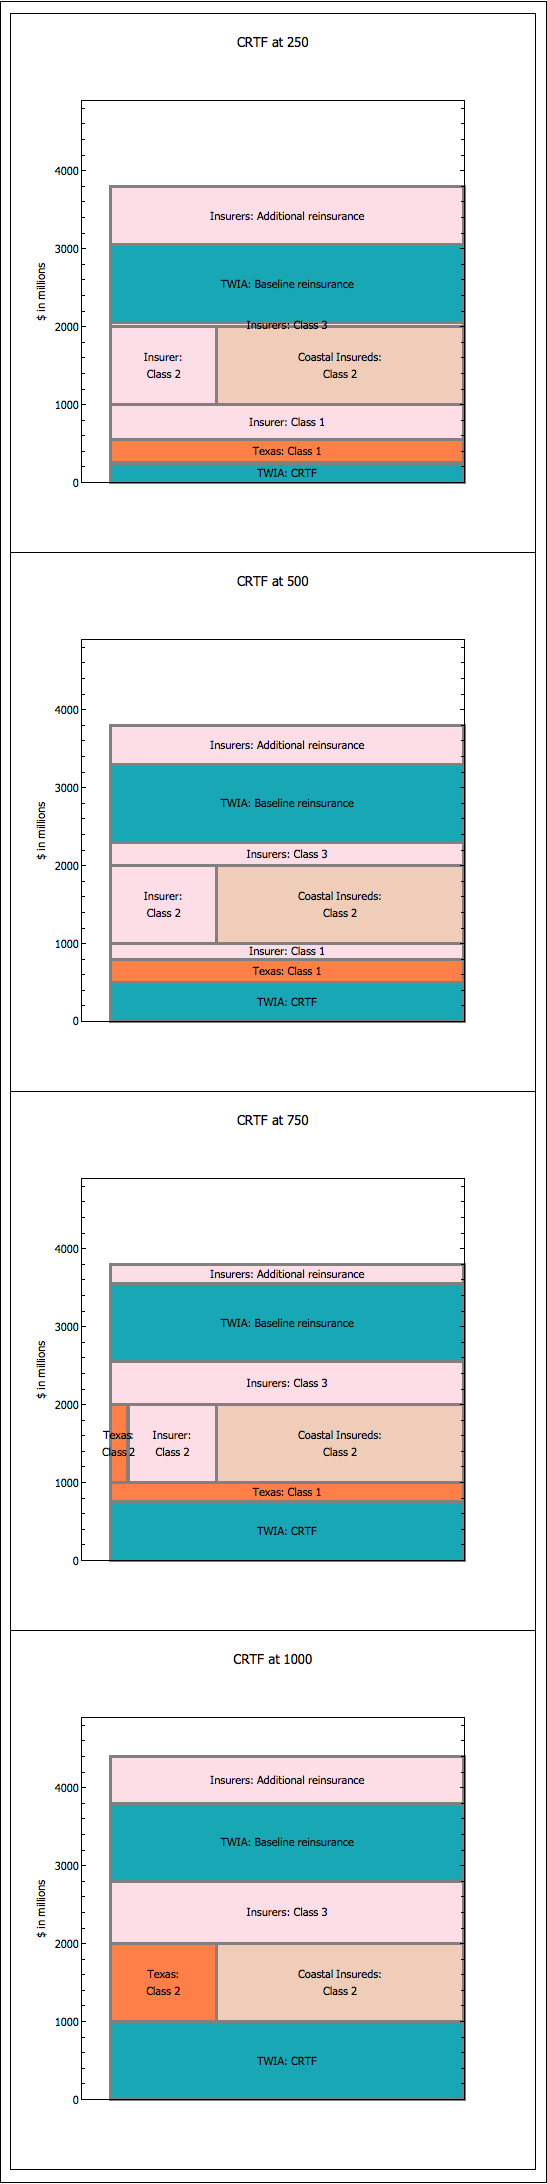 TWIA Stack Under HBCS 3622 for various CRTF values